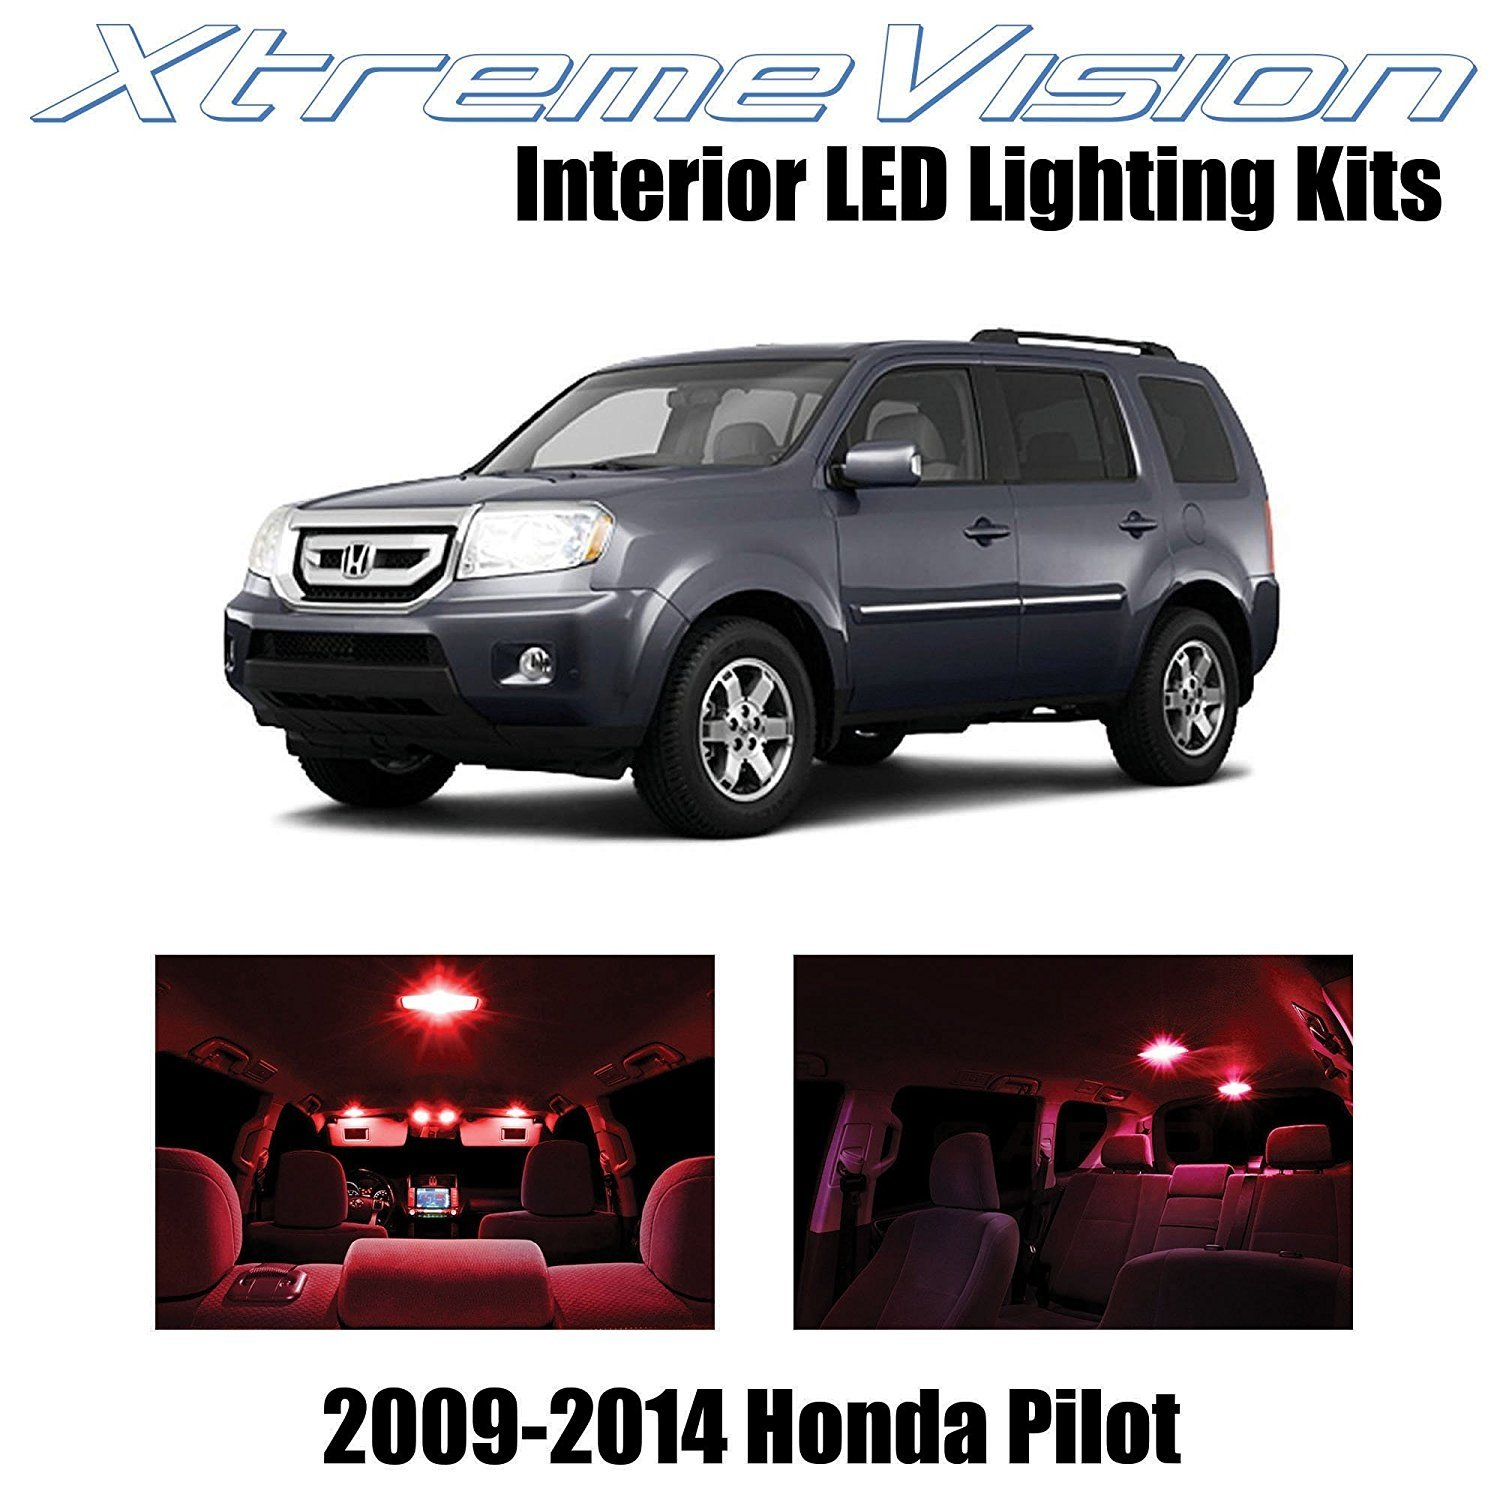 XtremeVision LED for Honda Pilot 2009-2014 (16 Pieces) Red Premium Interior LED Kit Package + Installation Tool